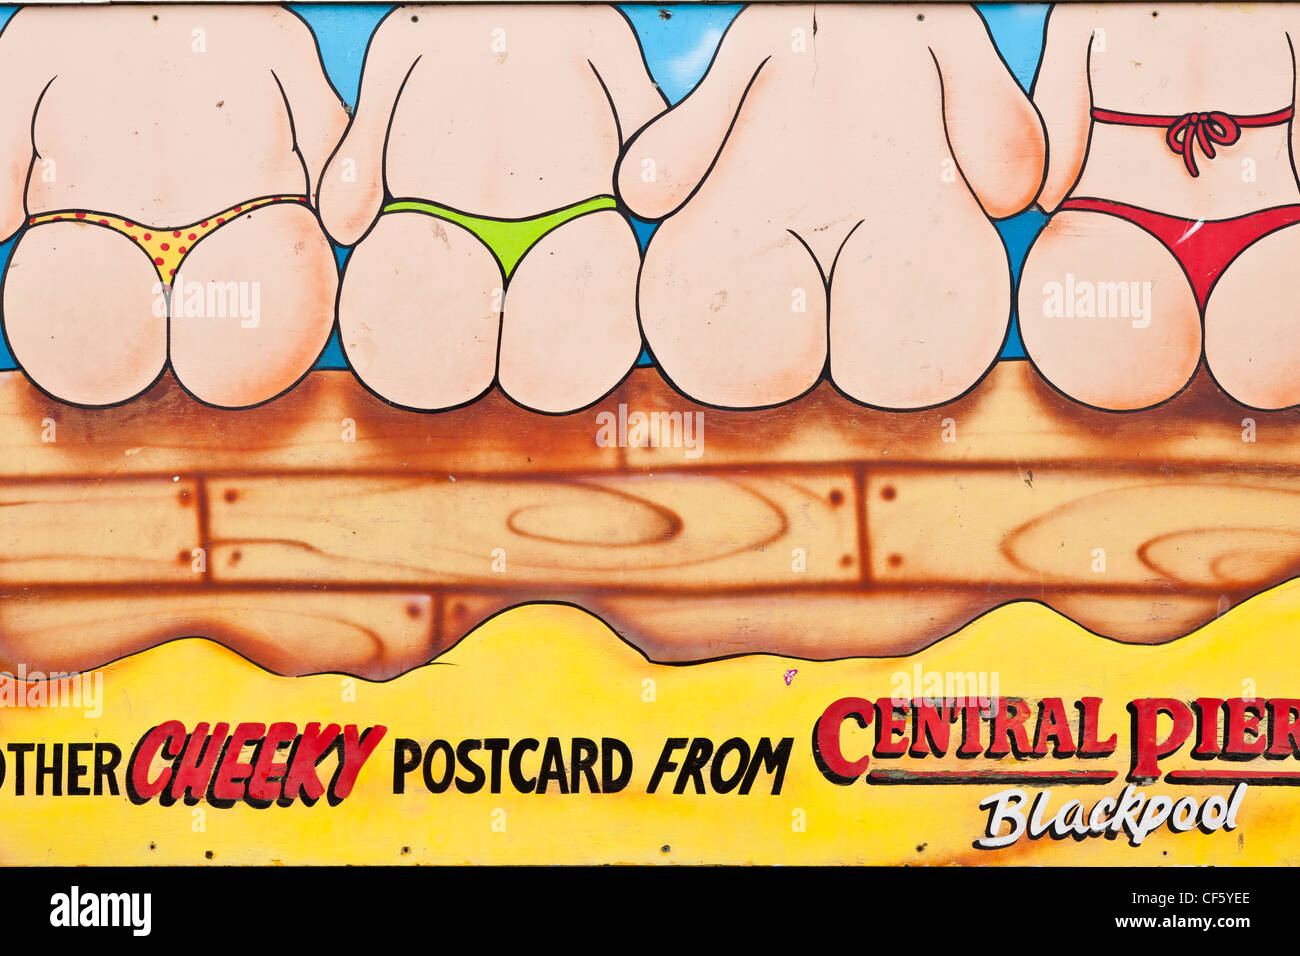 Blackpool Central Pier cheeky postcard sign. - Stock Image